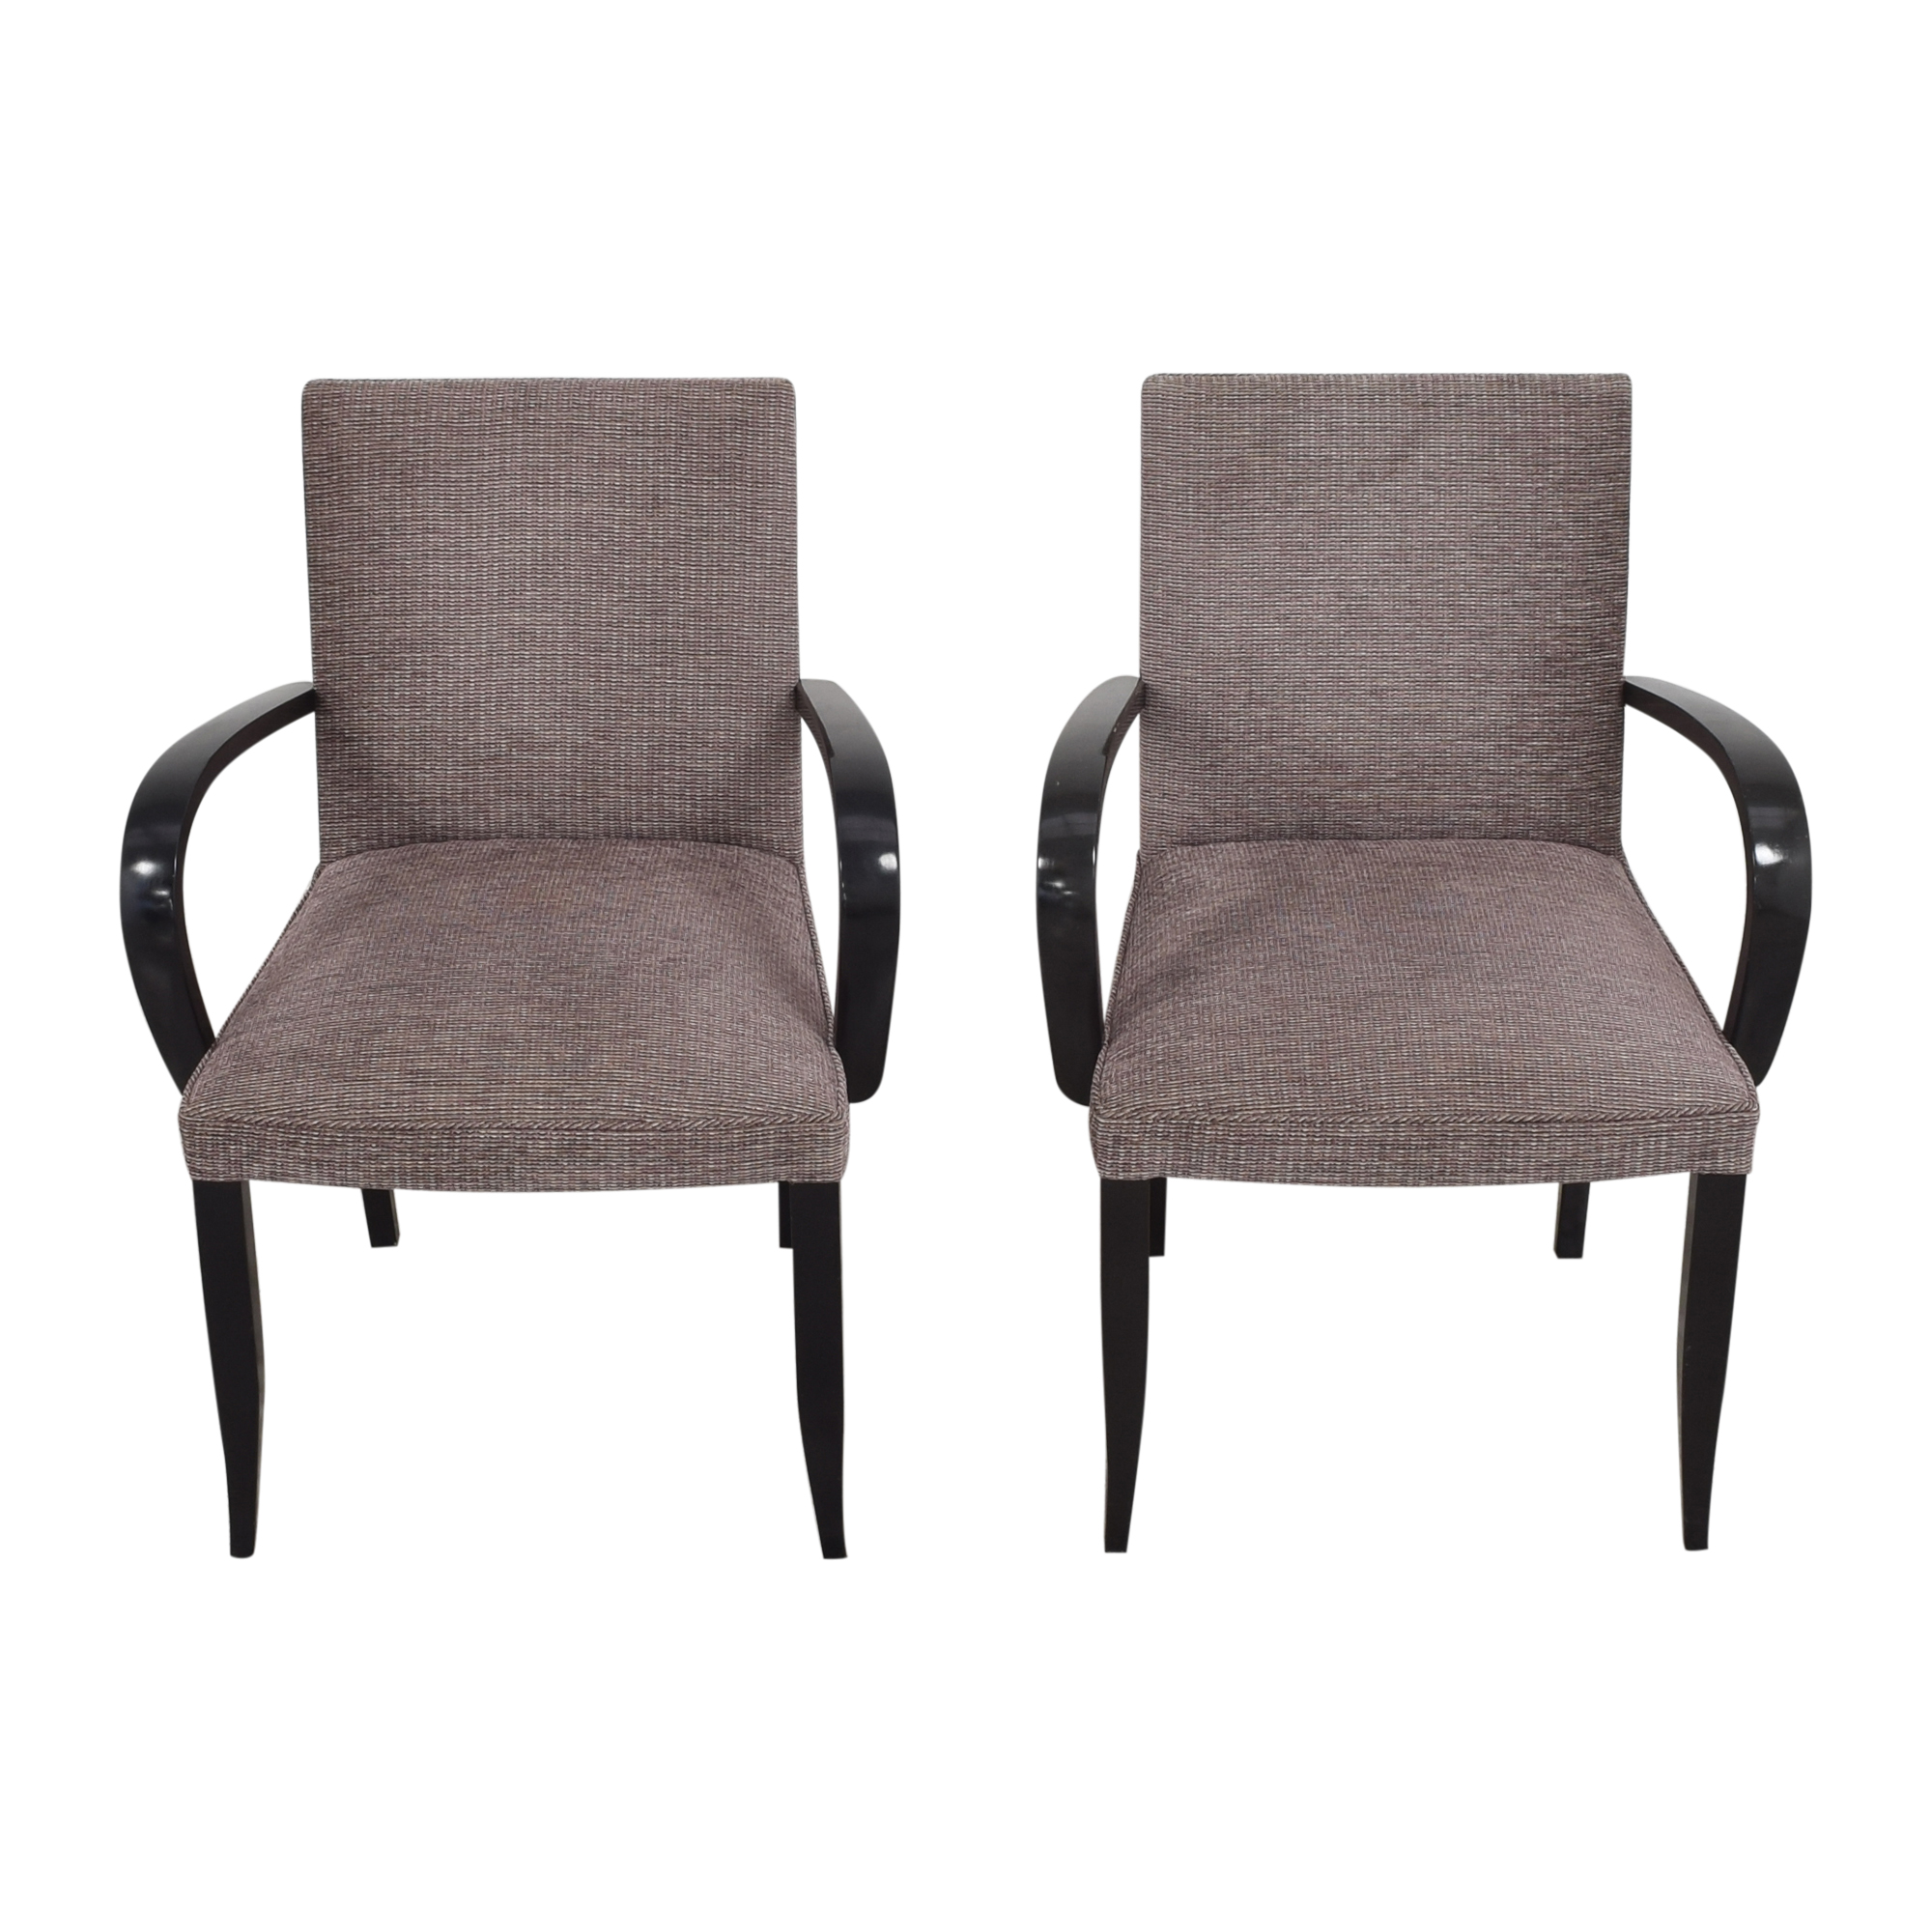 Office Arm Chairs discount